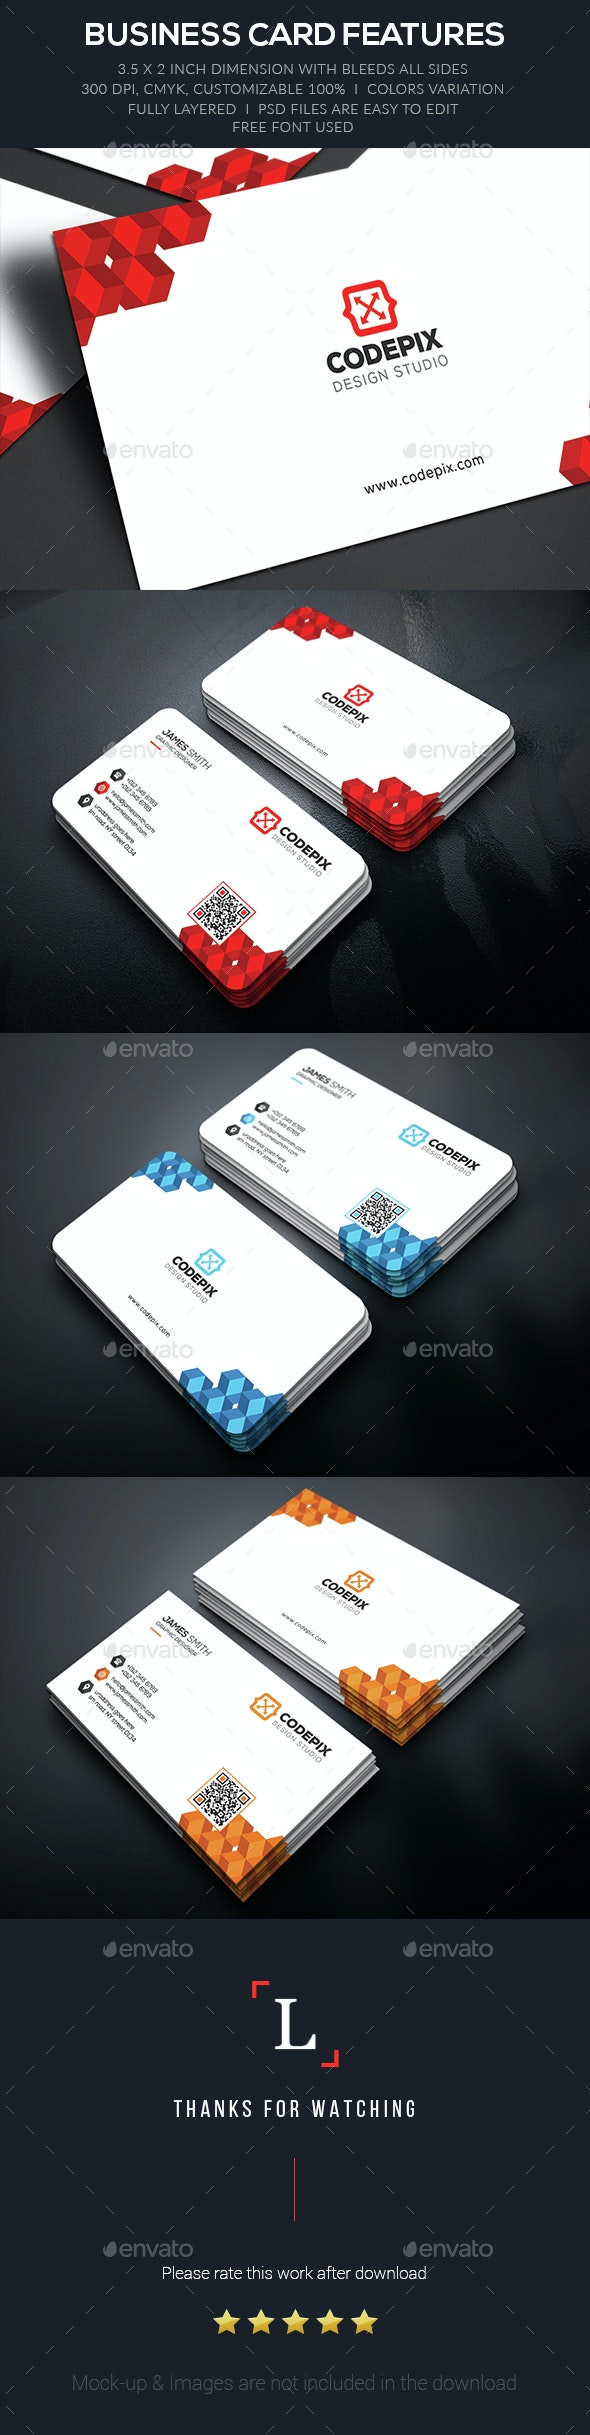 Color Corporate Business Card - Business Cards Print Templates